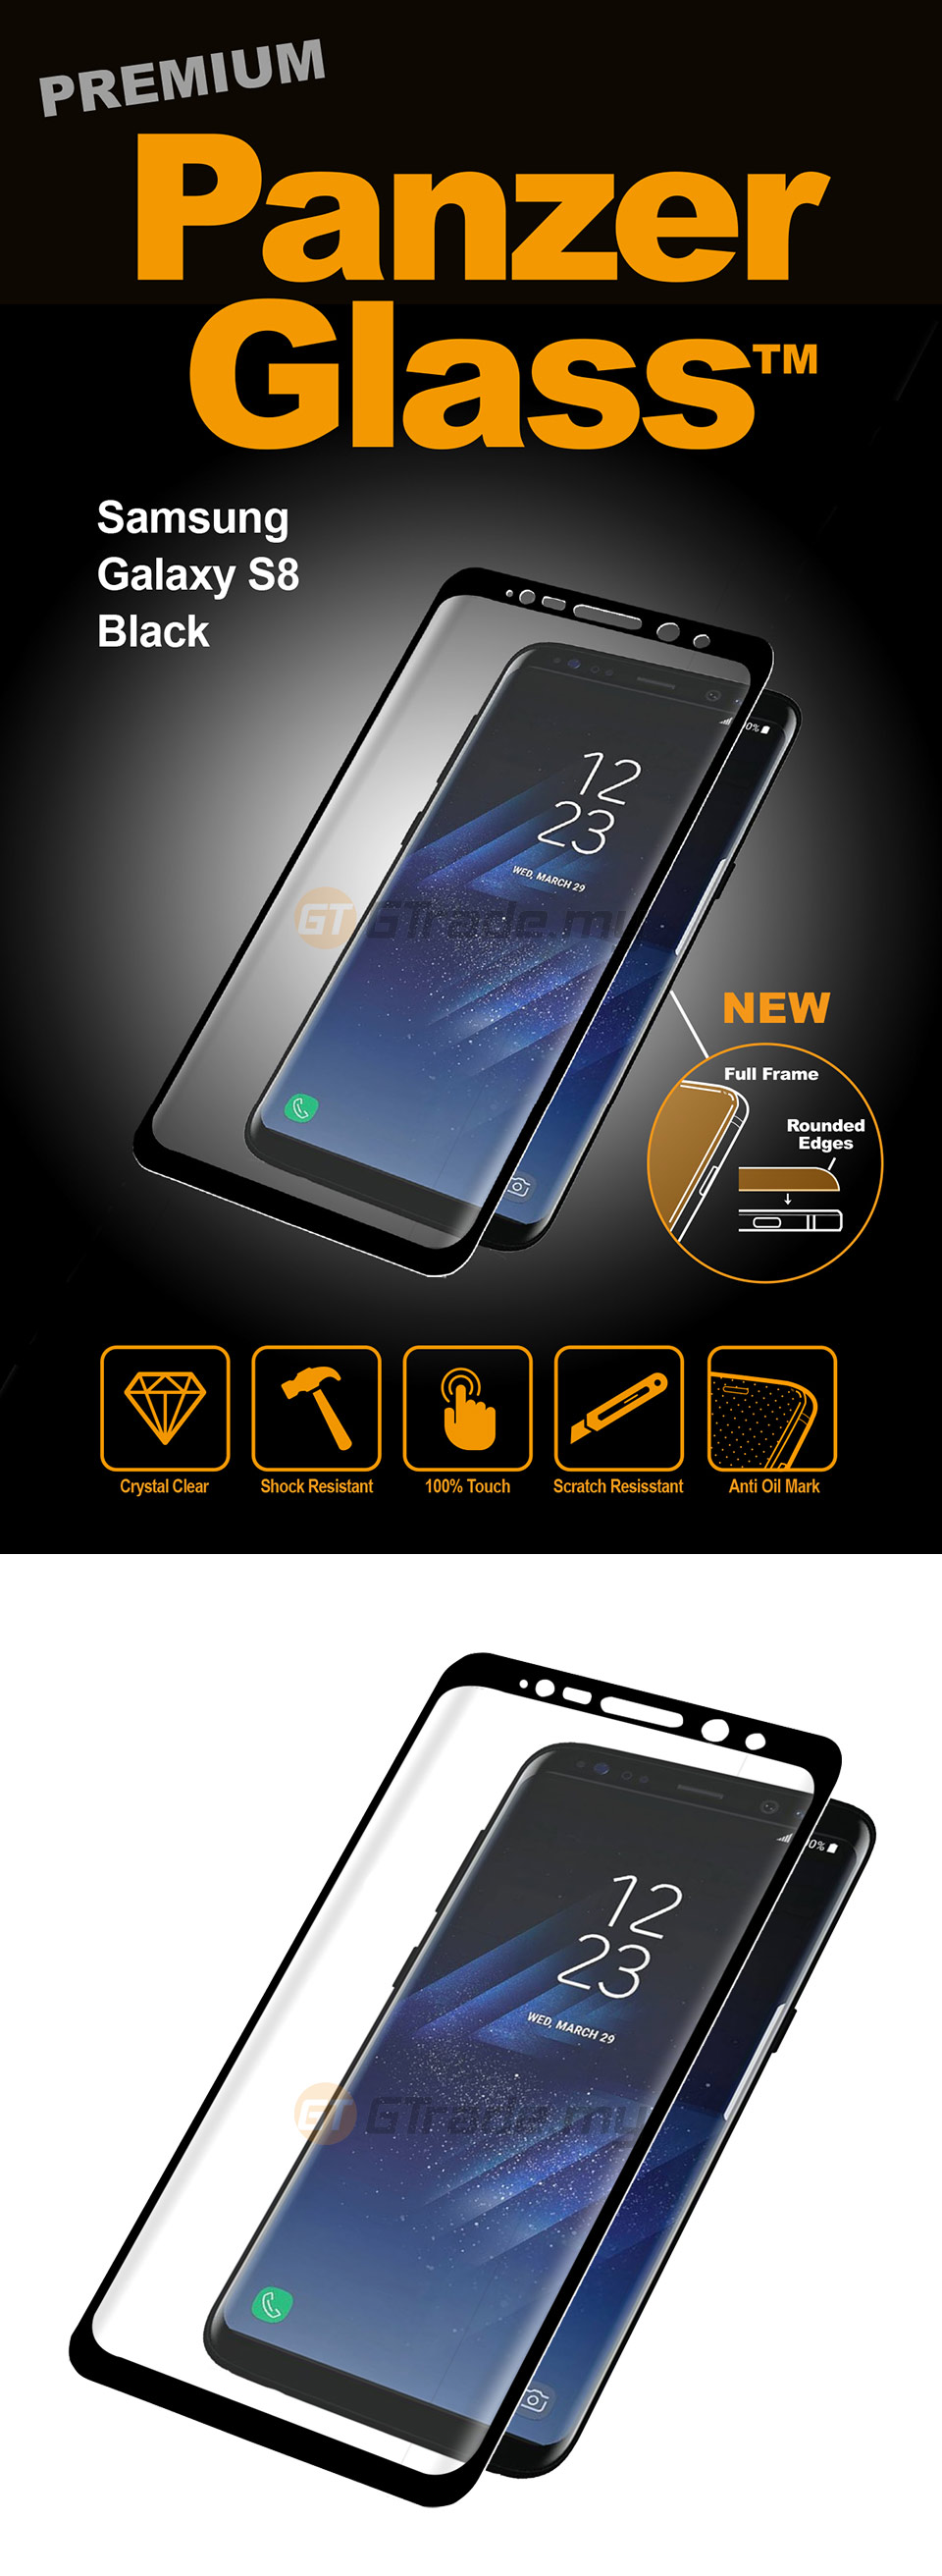 panzerglass-tempered-glass-screen-protector-premium-samsung-galaxy-s8-p